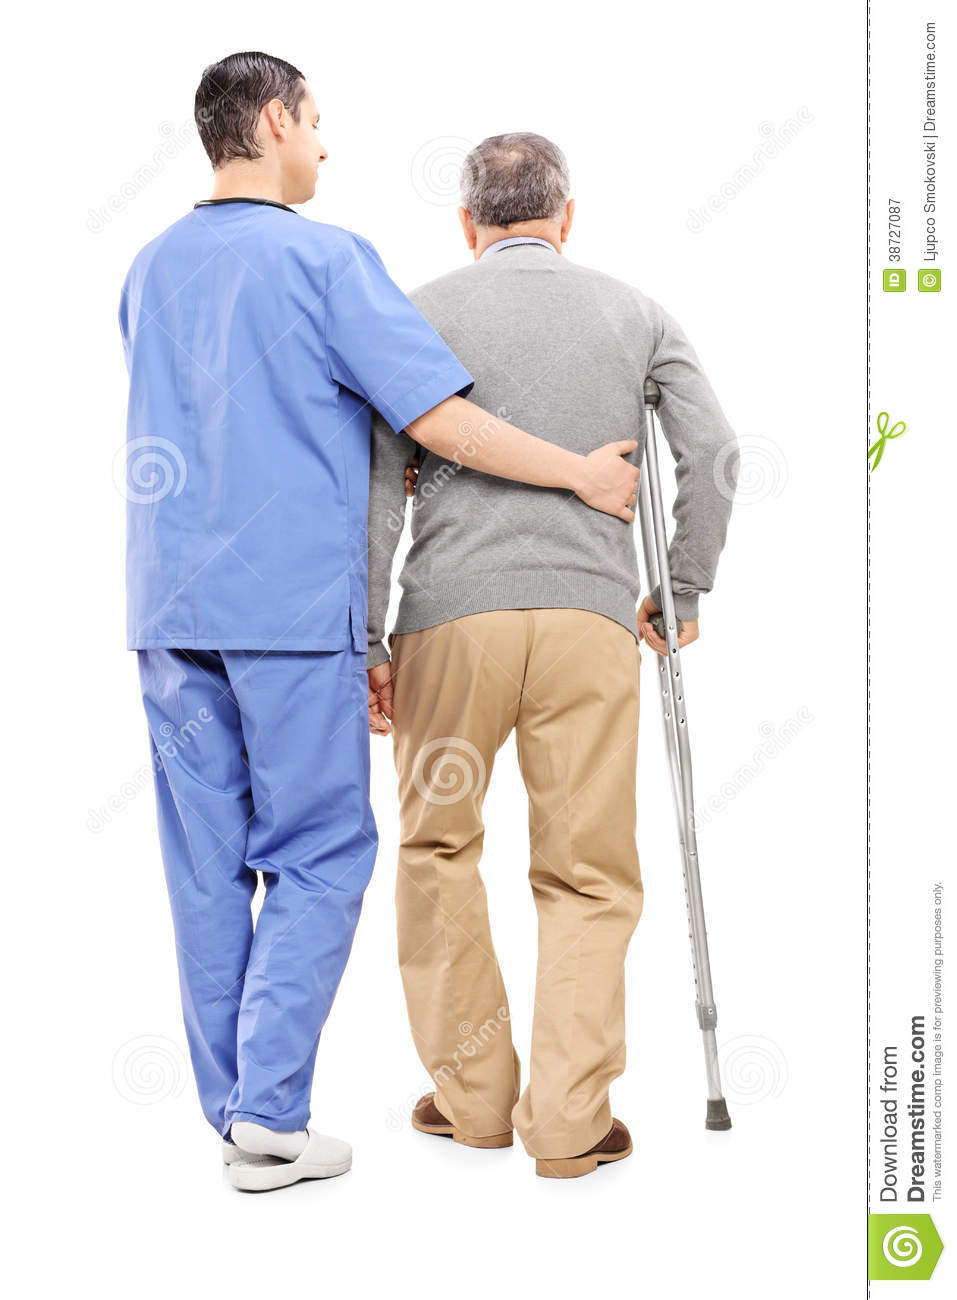 Male Nurse Helping An Elderly Gentleman Royalty Free Stock Photography ...